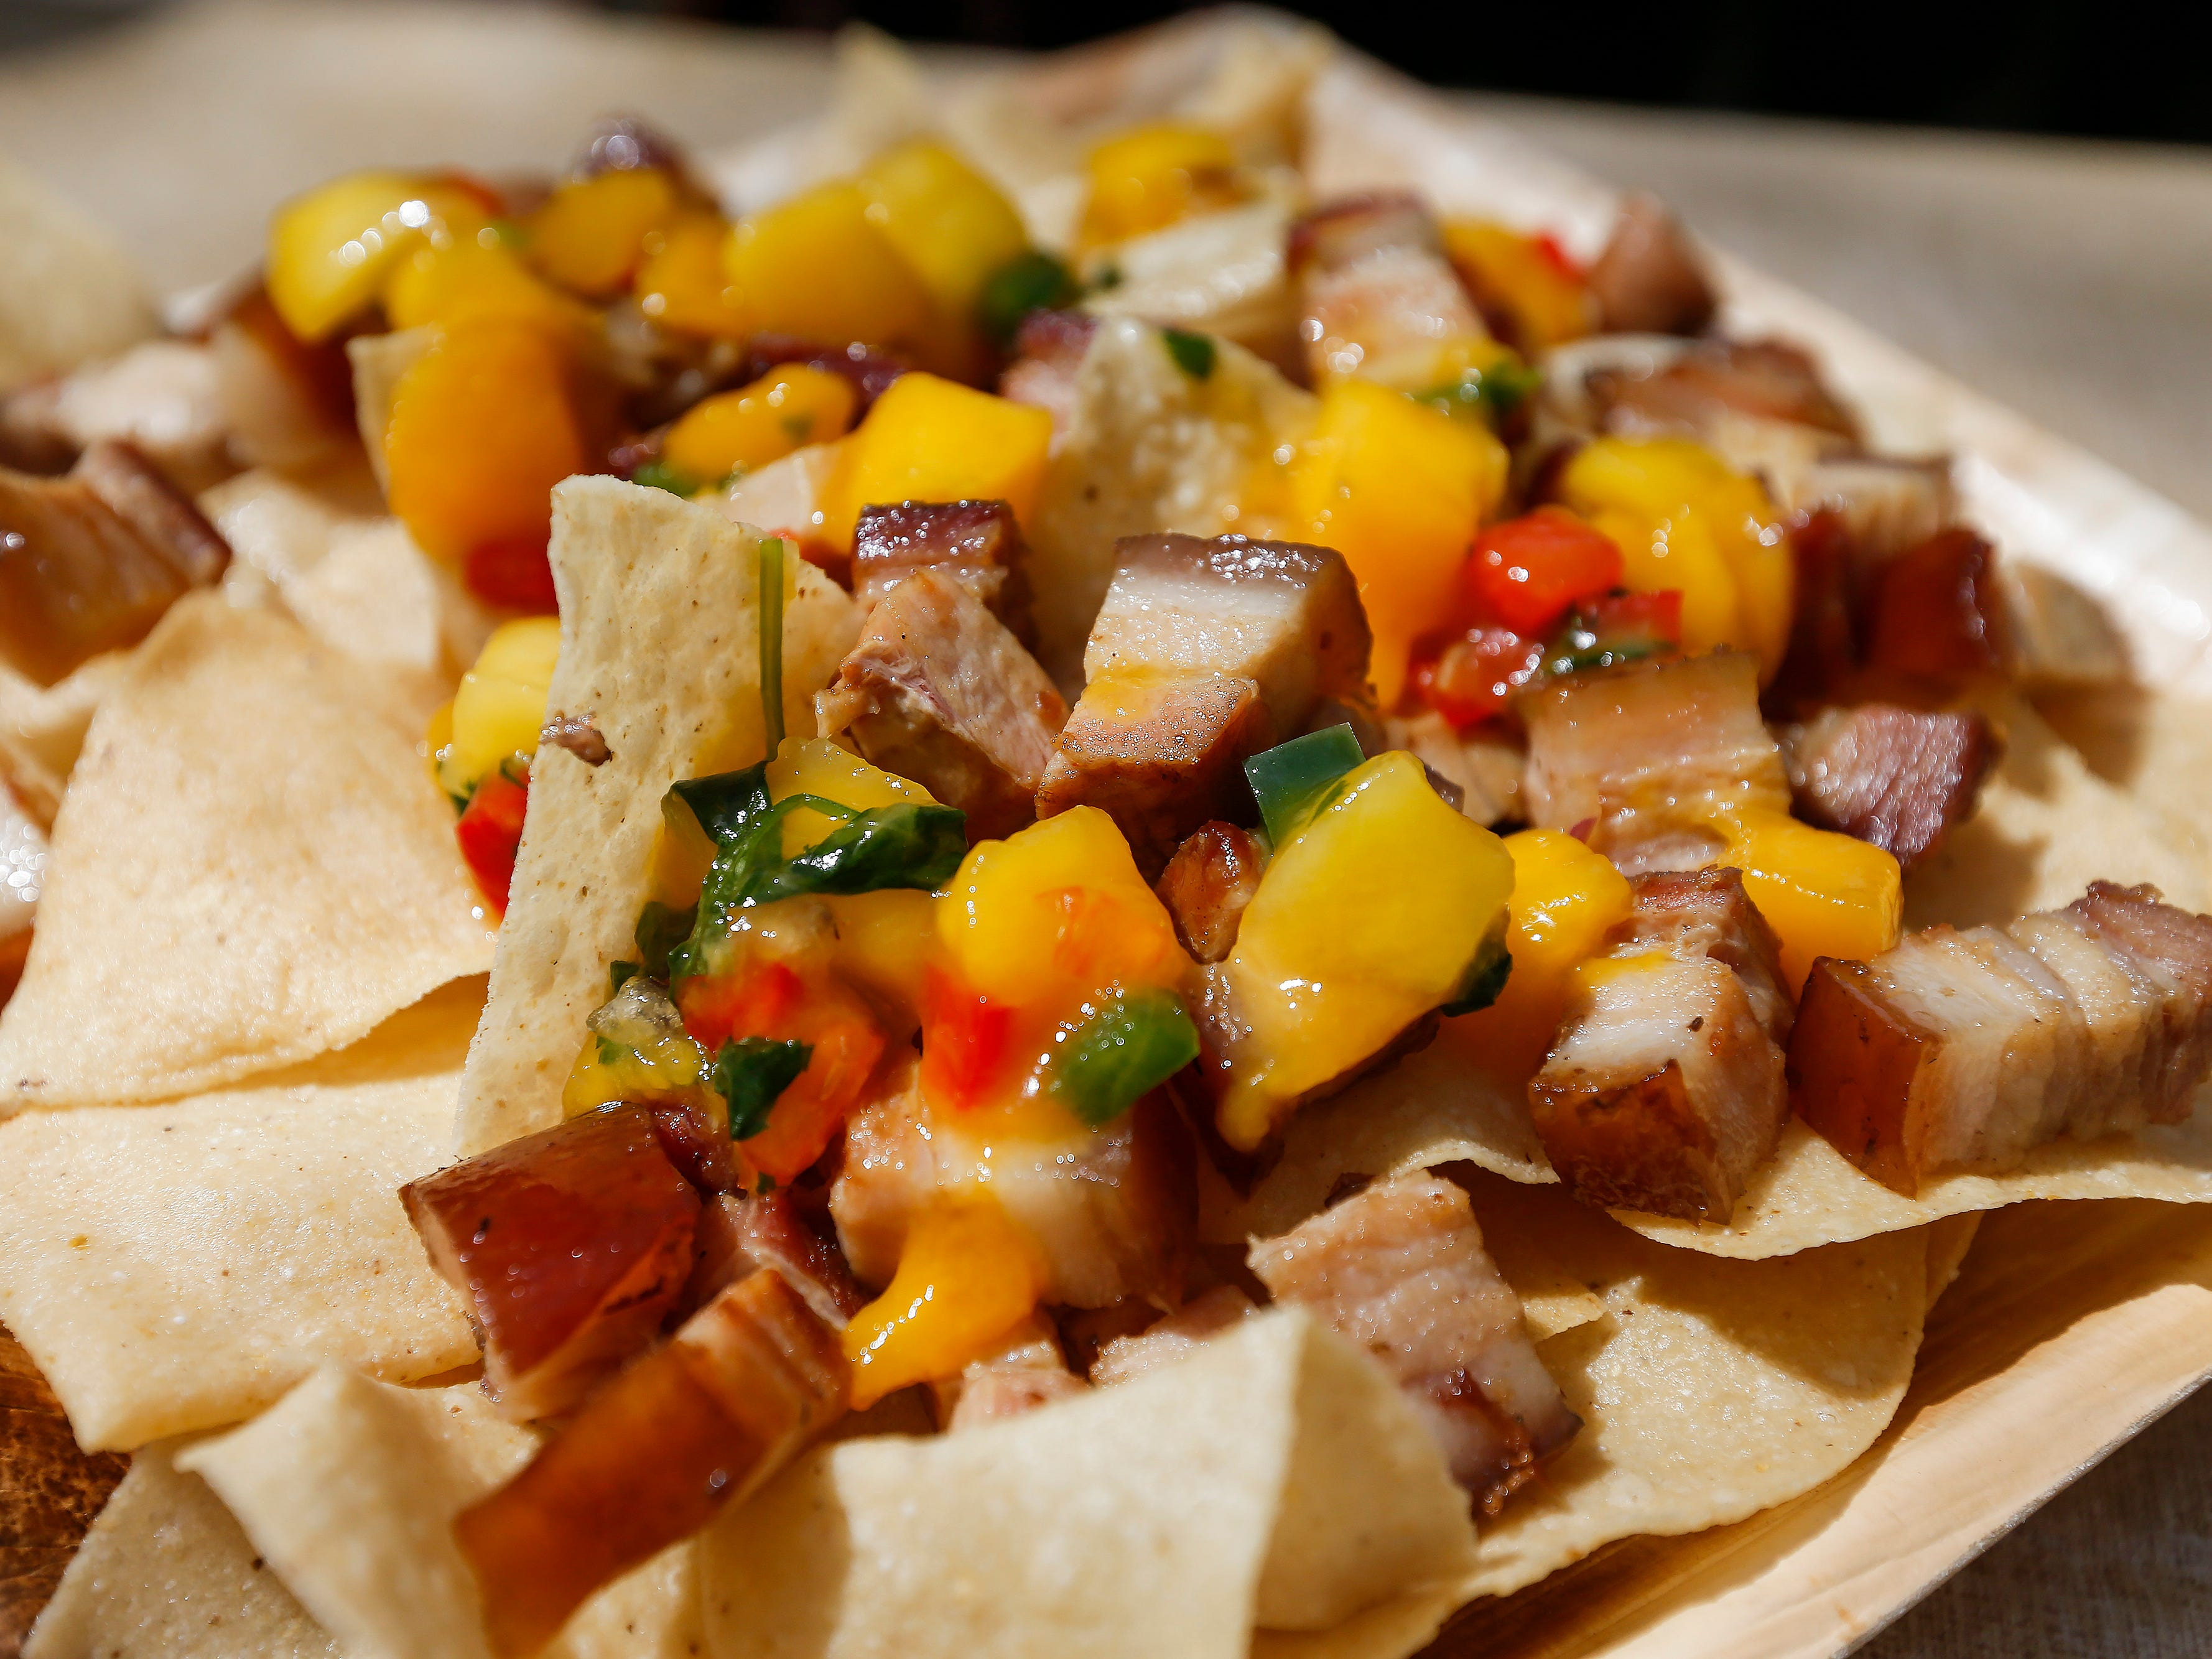 Foods of Wonder like these smoked honey glazed pork belly nachos with mango salsa are part of the Festival of Wonder at Silver Dollar City. The event runs Wednesdays through Sundays, April 10-28.